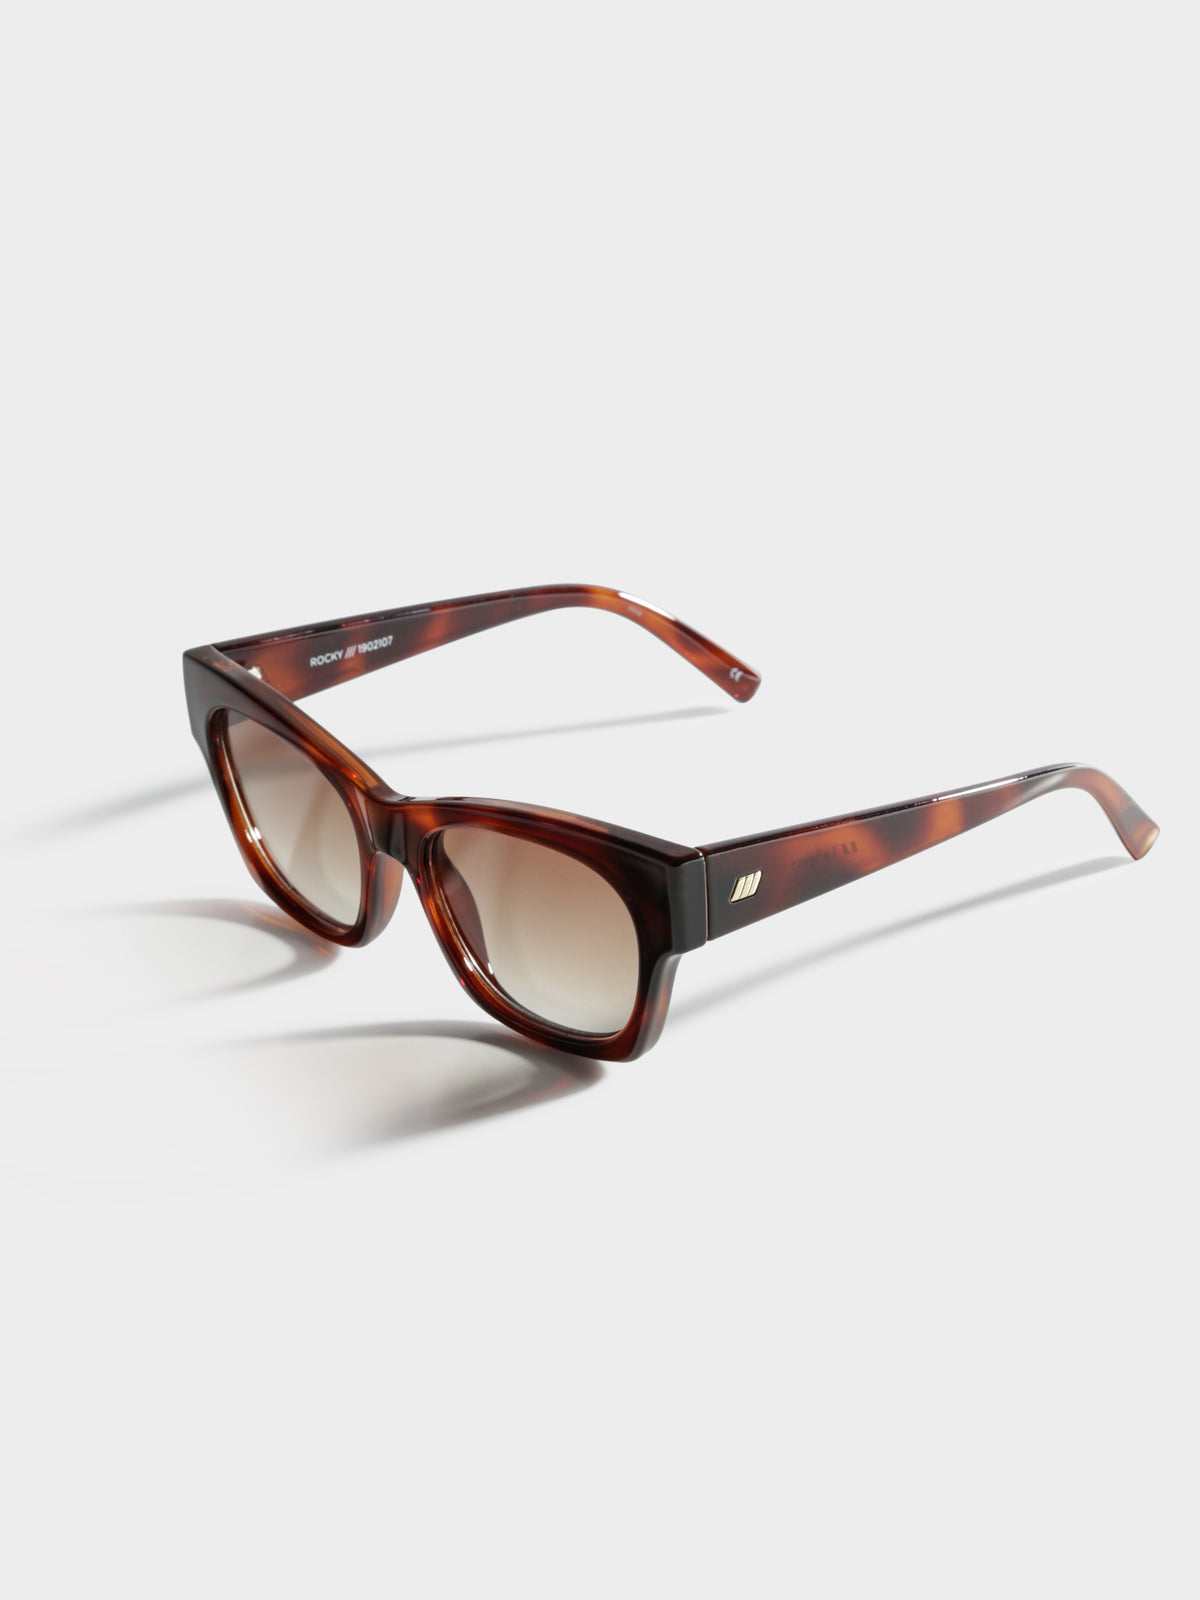 Rocky Sunglasses in Tortoiseshell